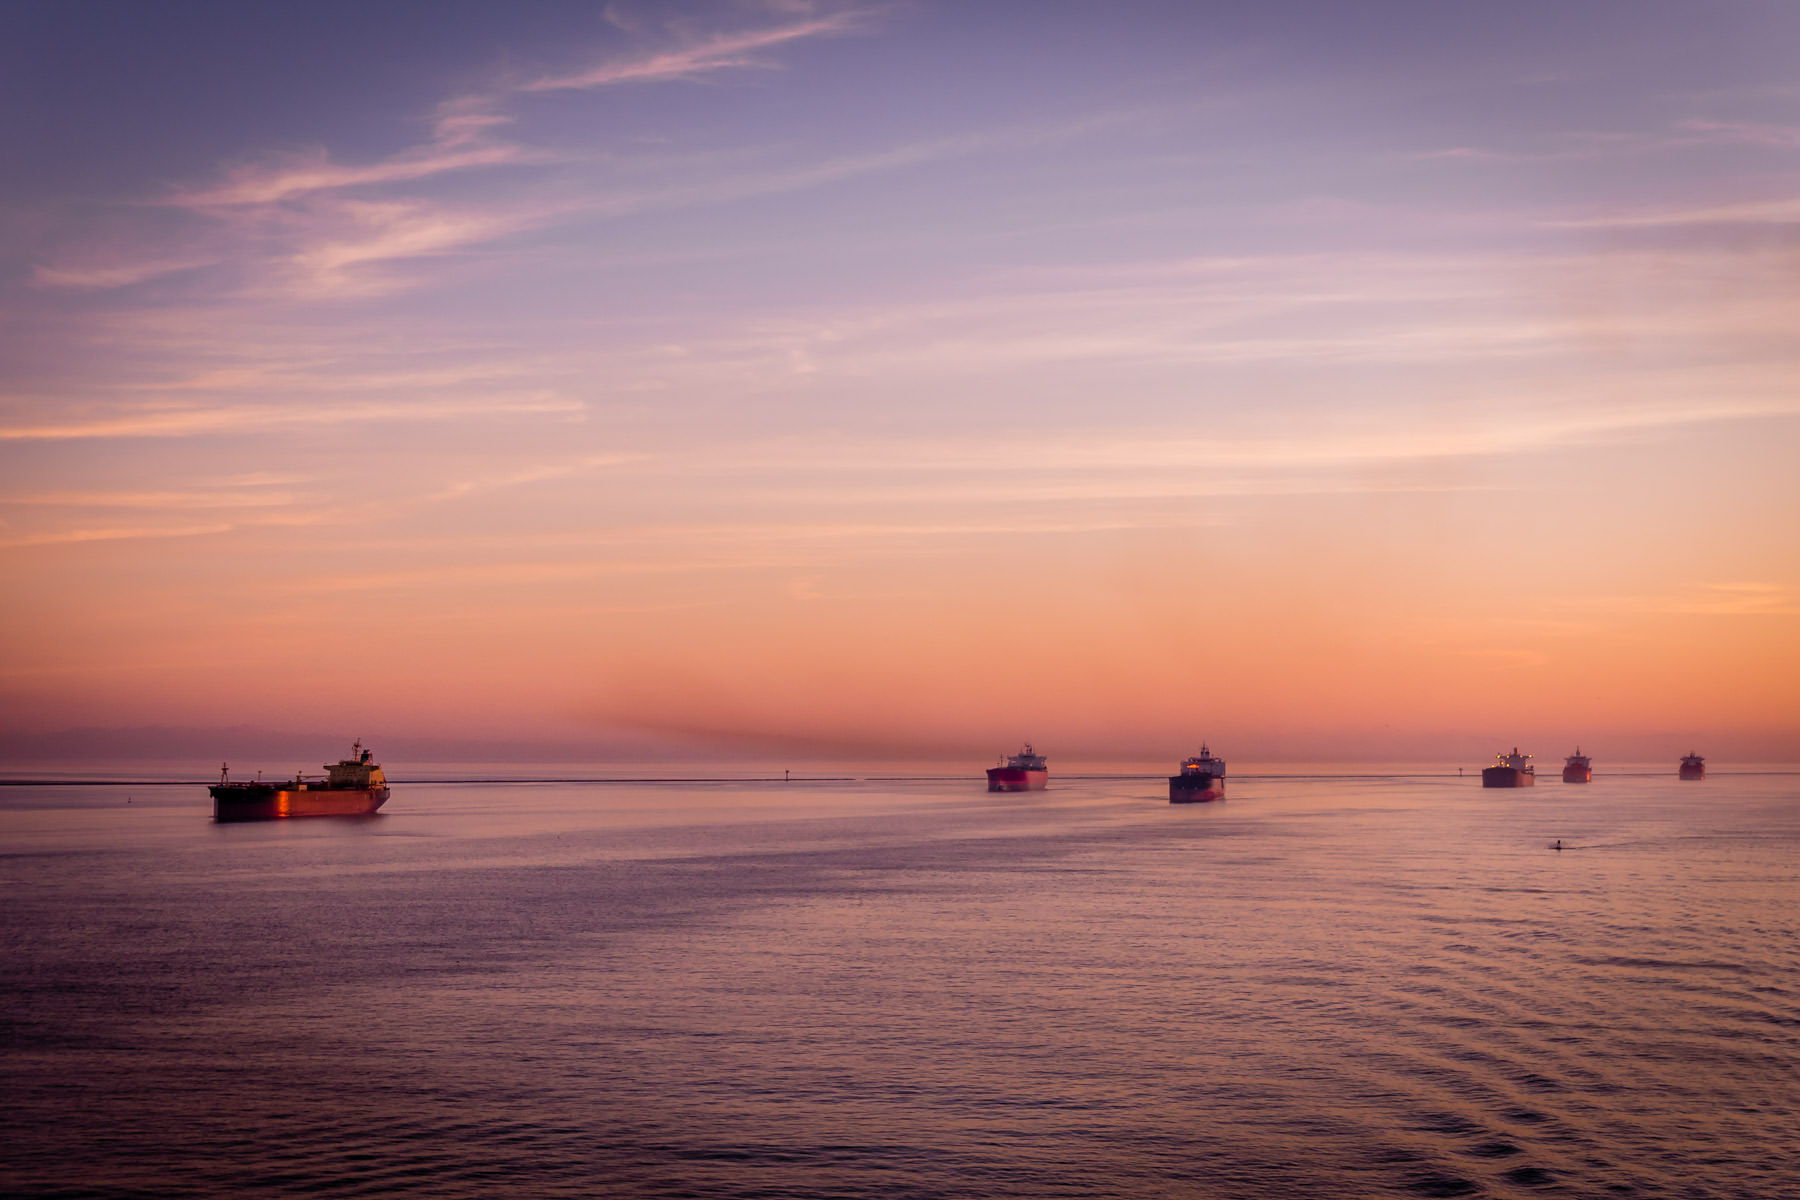 Tankers await their turn to enter the Port of Houston as the sun rises over the Gulf of Mexico just off the shore of Galveston, Texas.